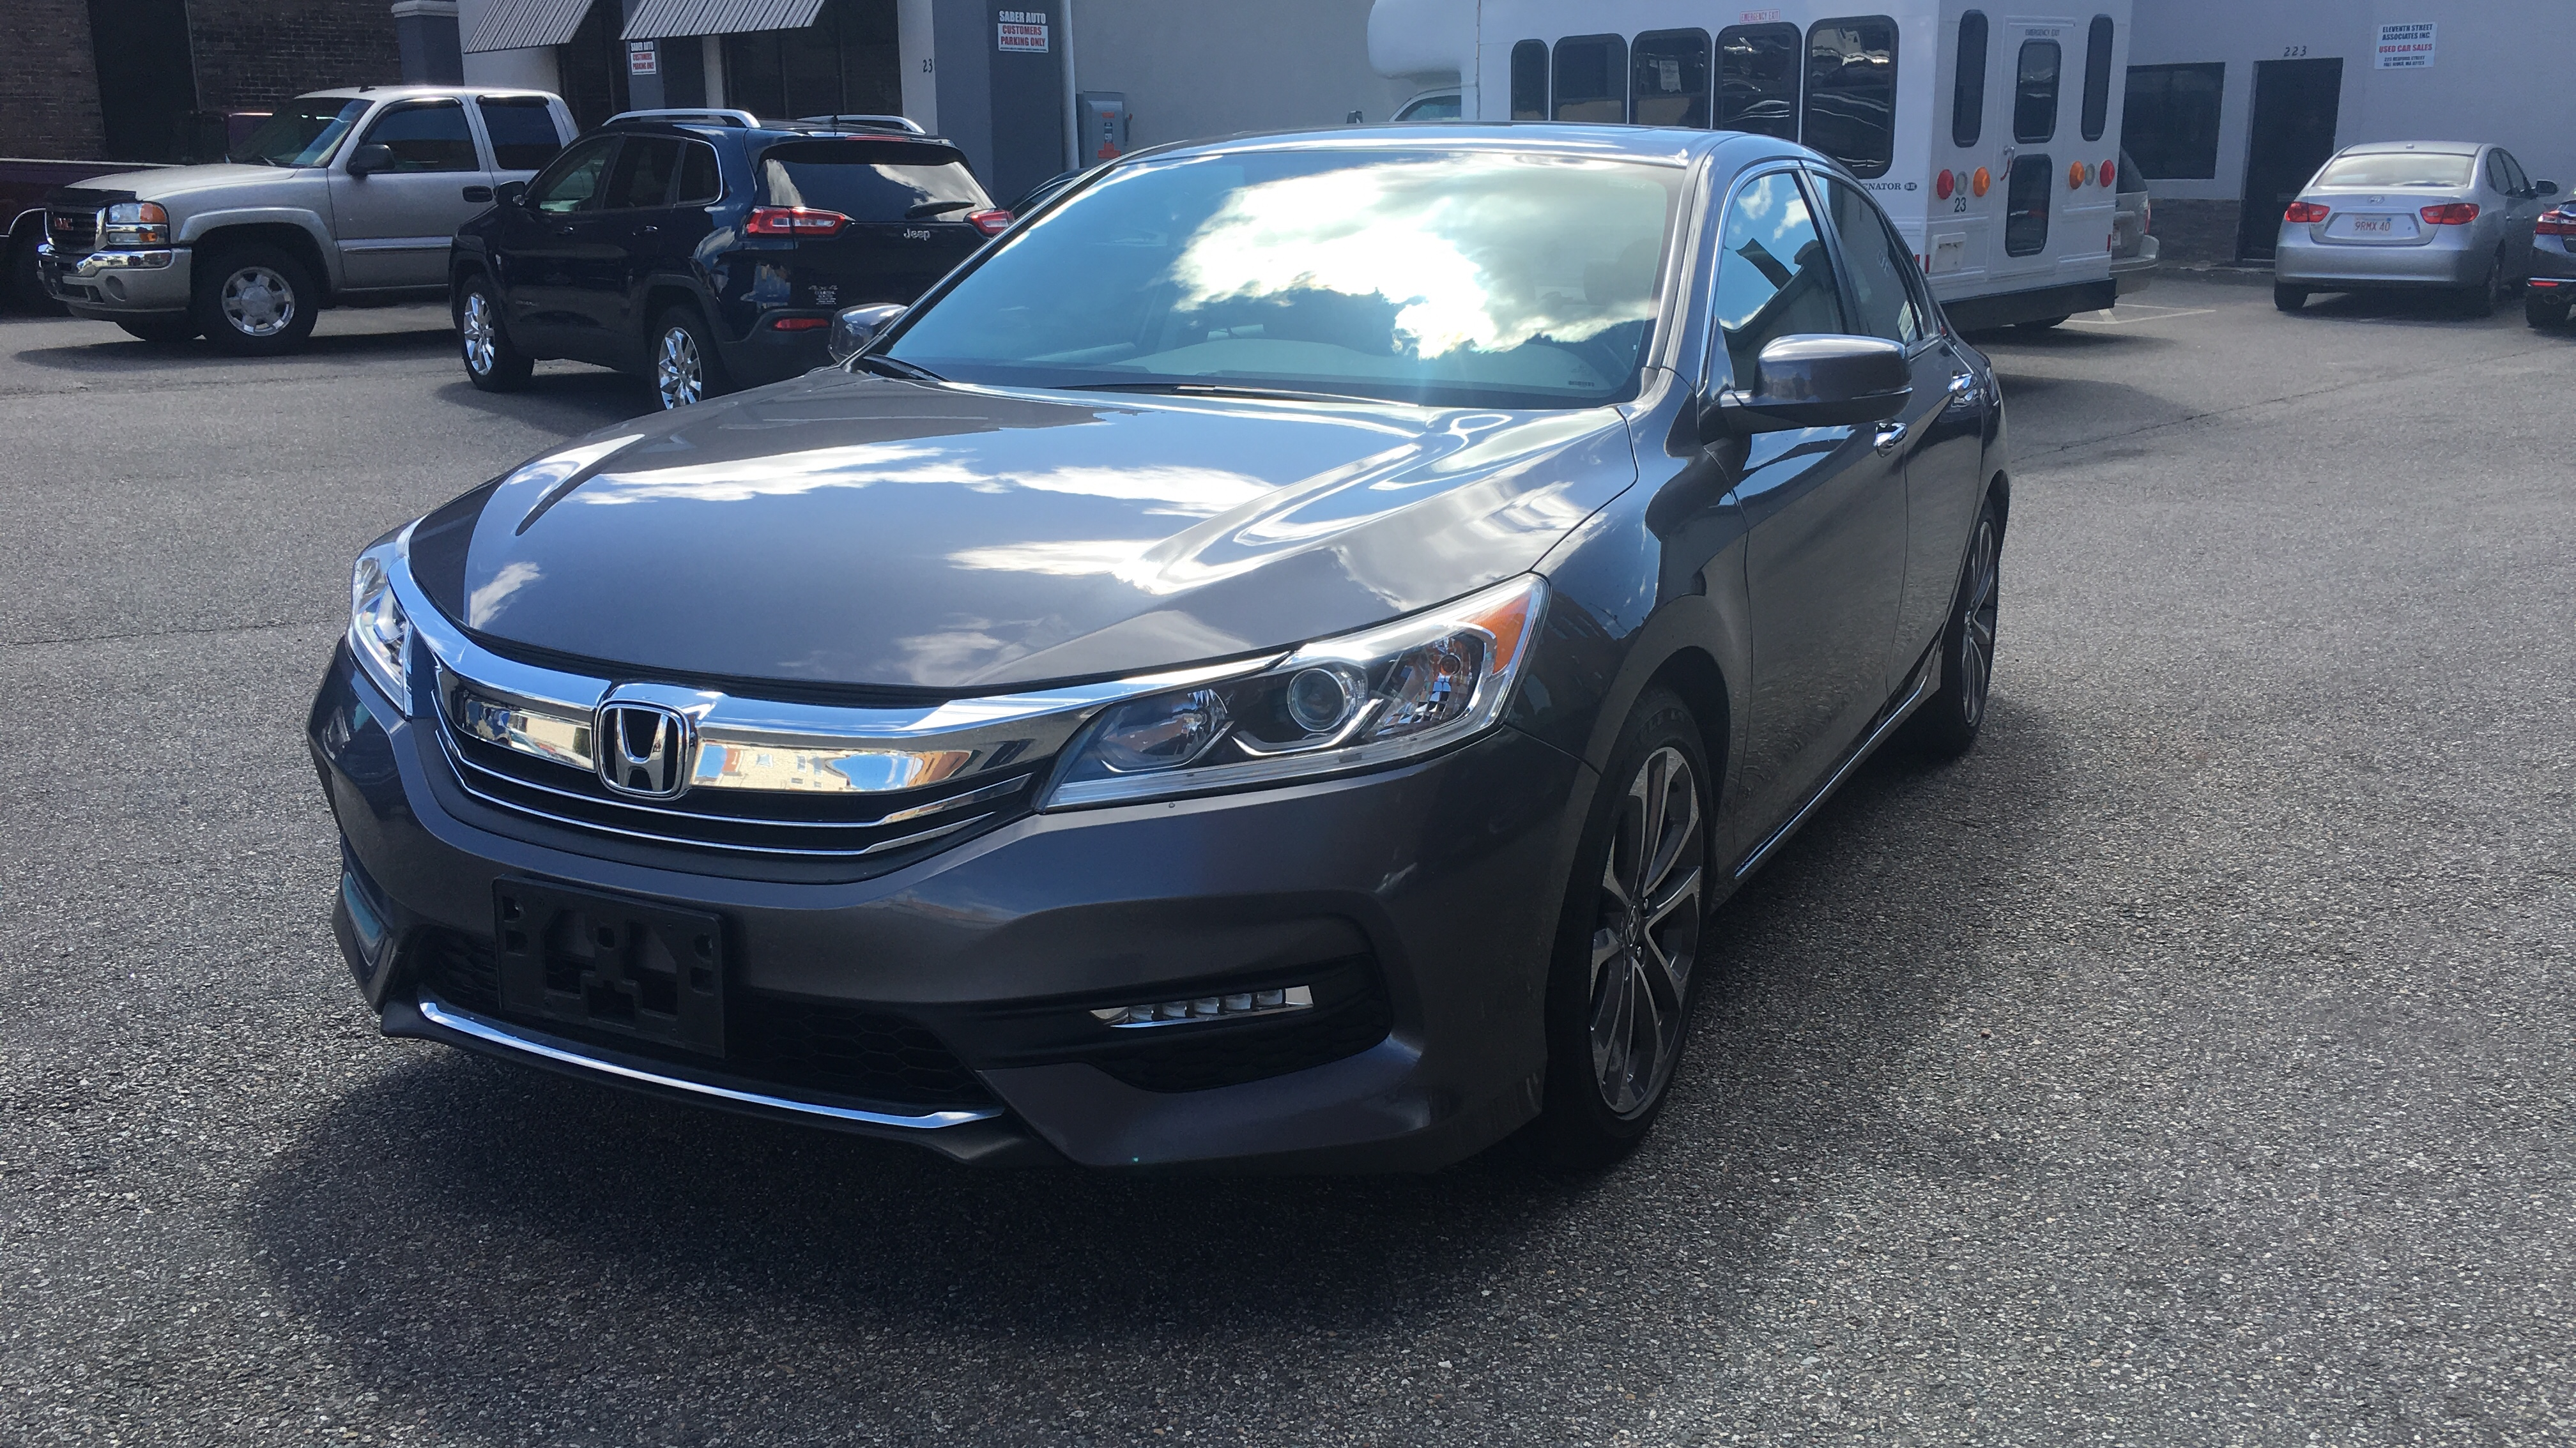 accord auto sport car interior honda update price review x manual